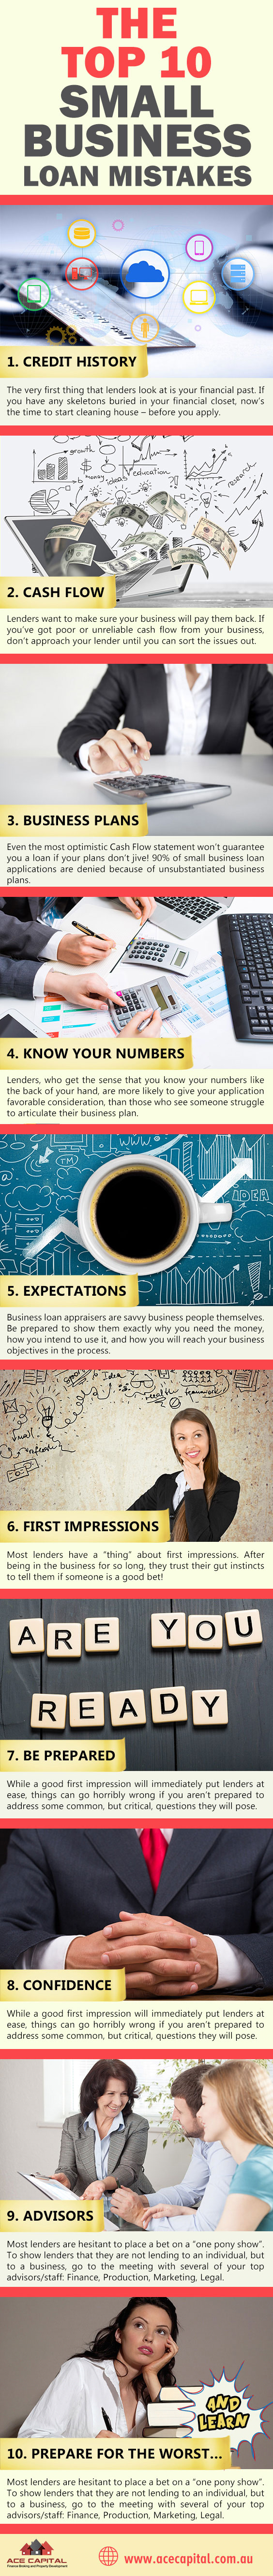 business-loan-mistakes